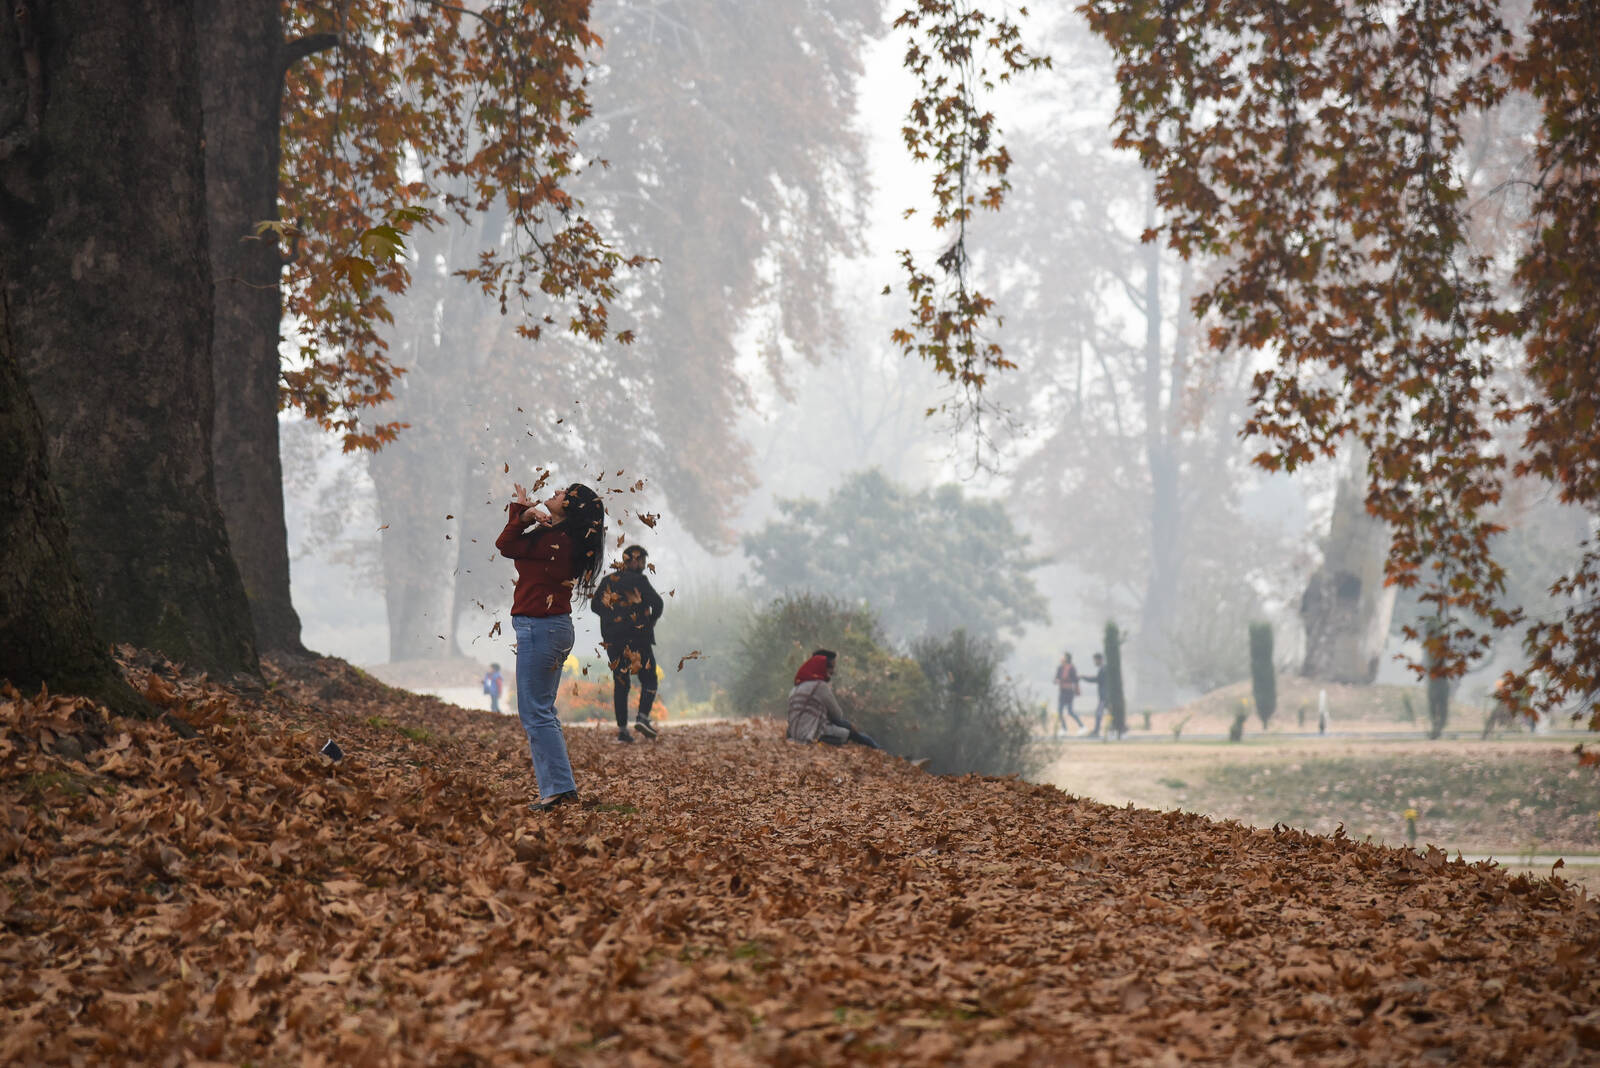 Tourists are seen playing with falling maple leaves at a Mughal garden during the autumn season in Kashmire on Nov. 12, 2020.